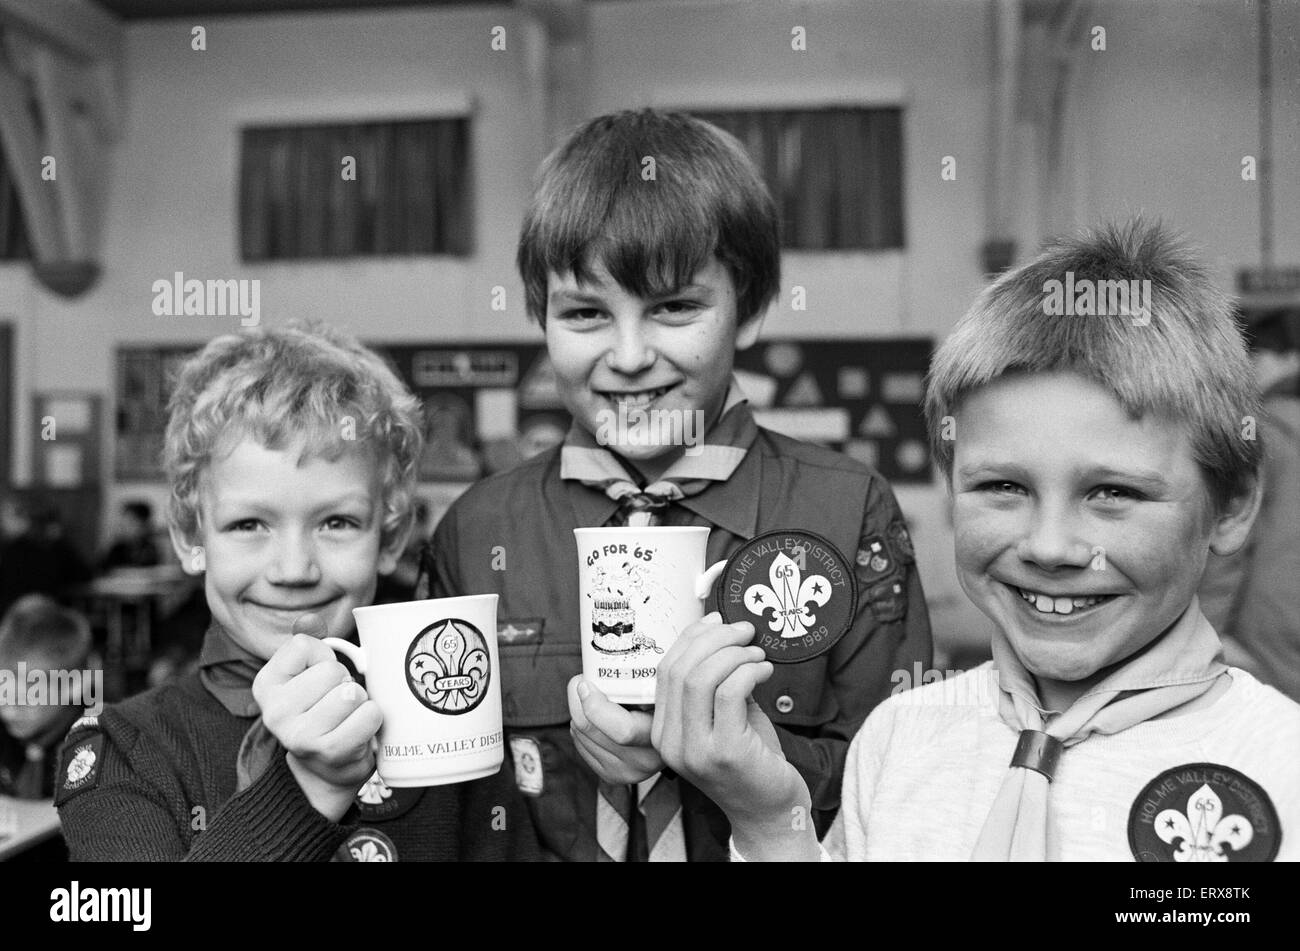 Holme Valley Cubs with commemorative mugs celebrating 65 years of scouting in the Holme Valley,  28th January 1989. - Stock Image